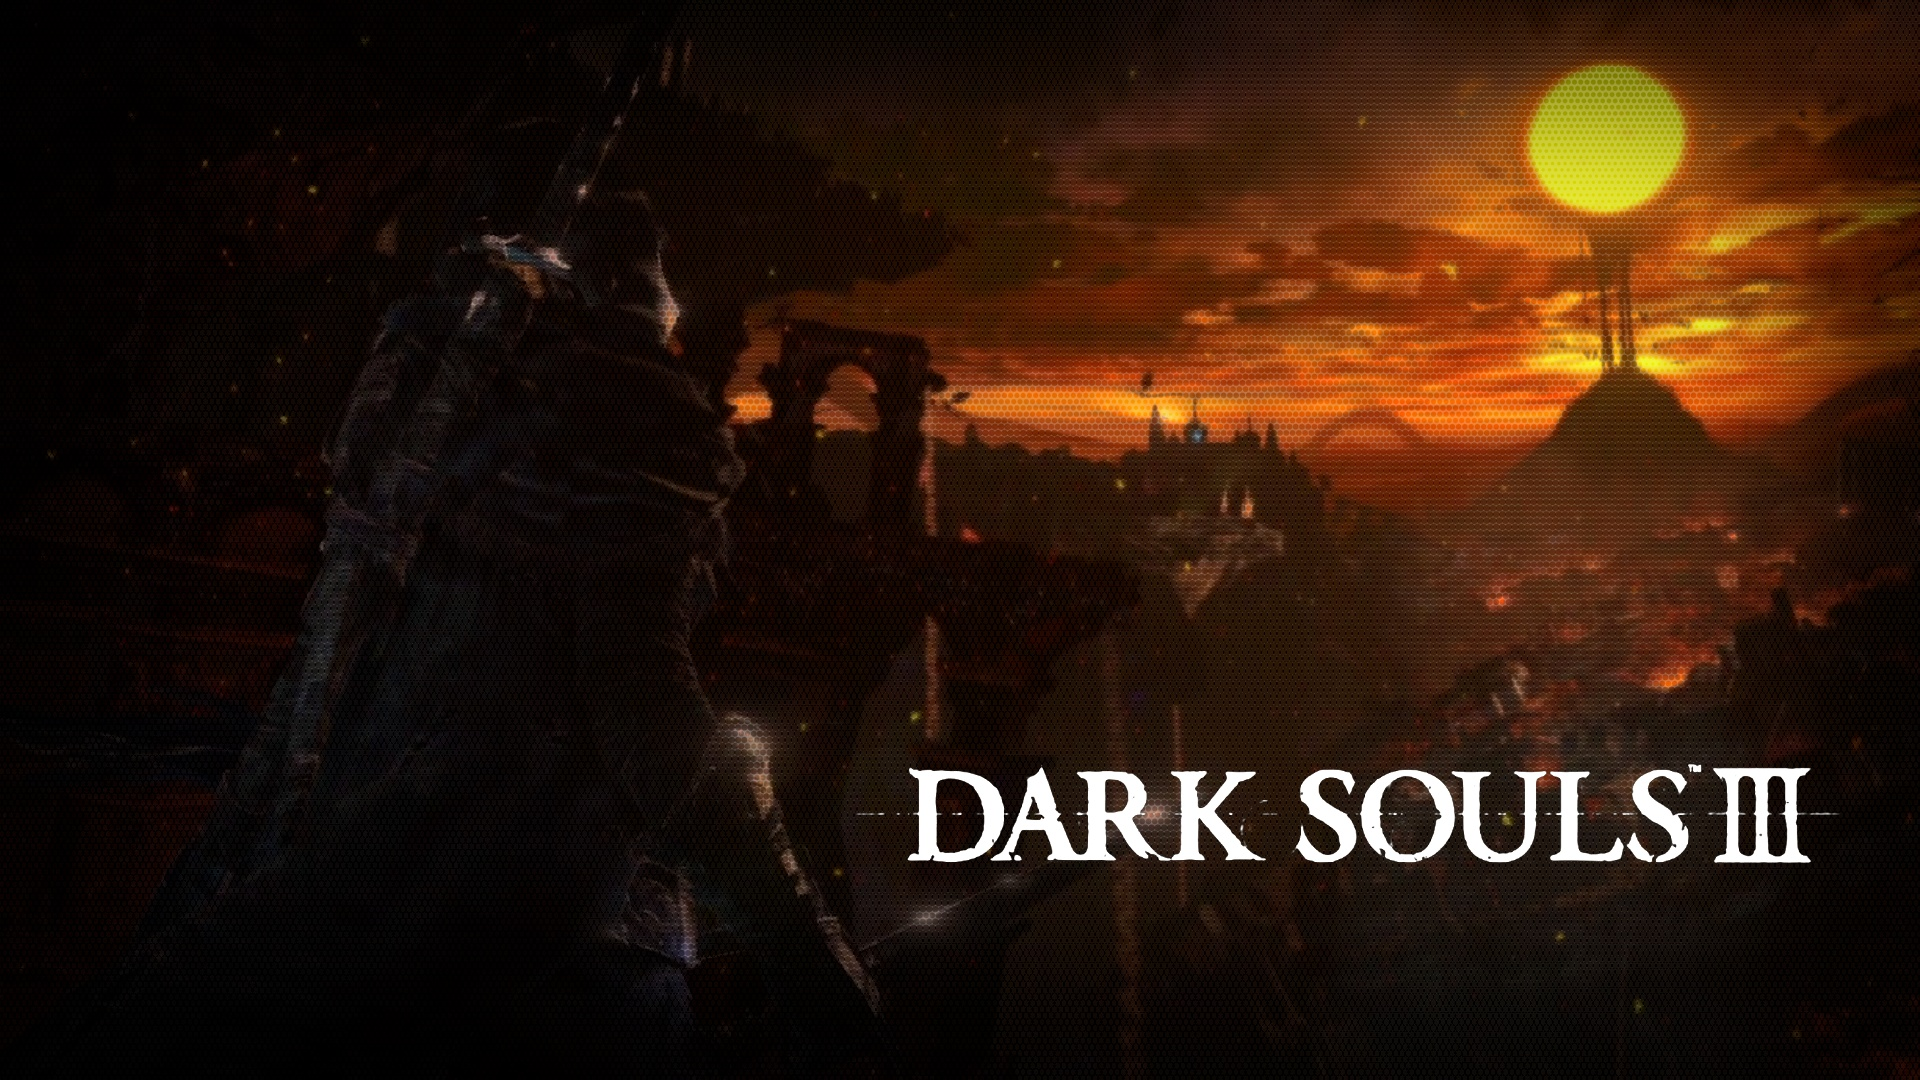 Dark Souls 3 Desktop Background: Dark Souls 3 Wallpaper